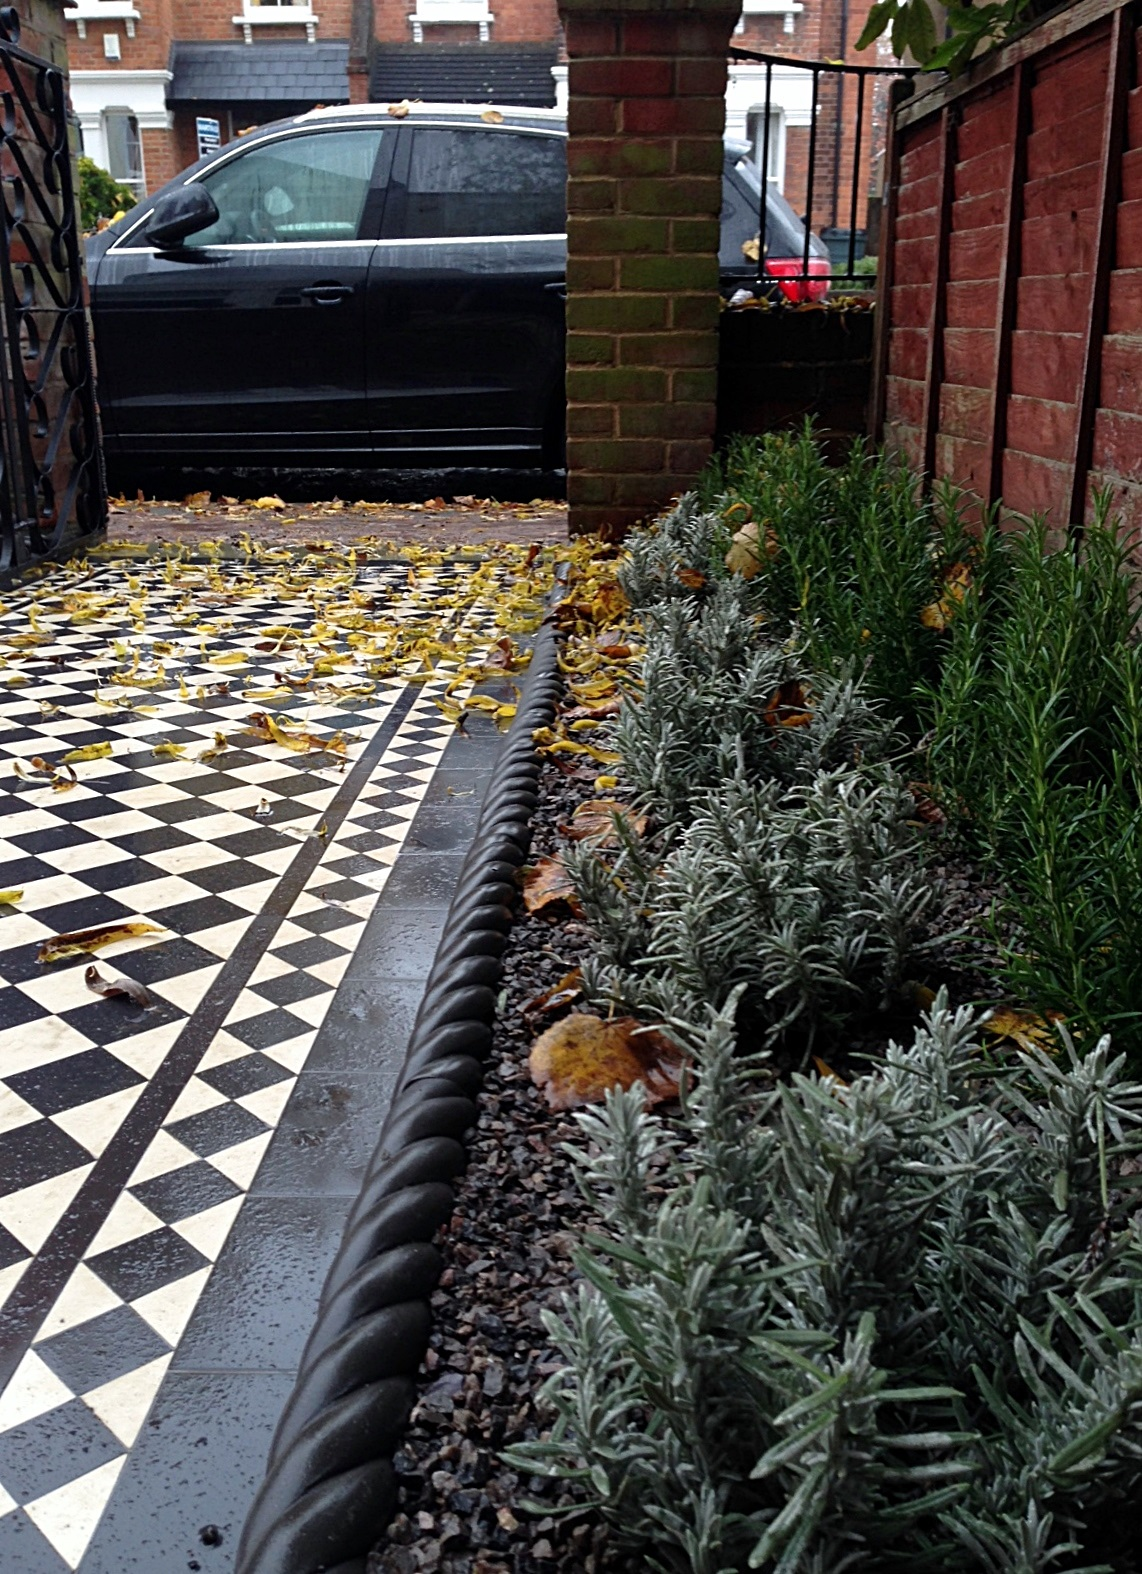 victroian black and white mosaic tile garden path paving formal planting buxus bay lavender edge tiles london (2)